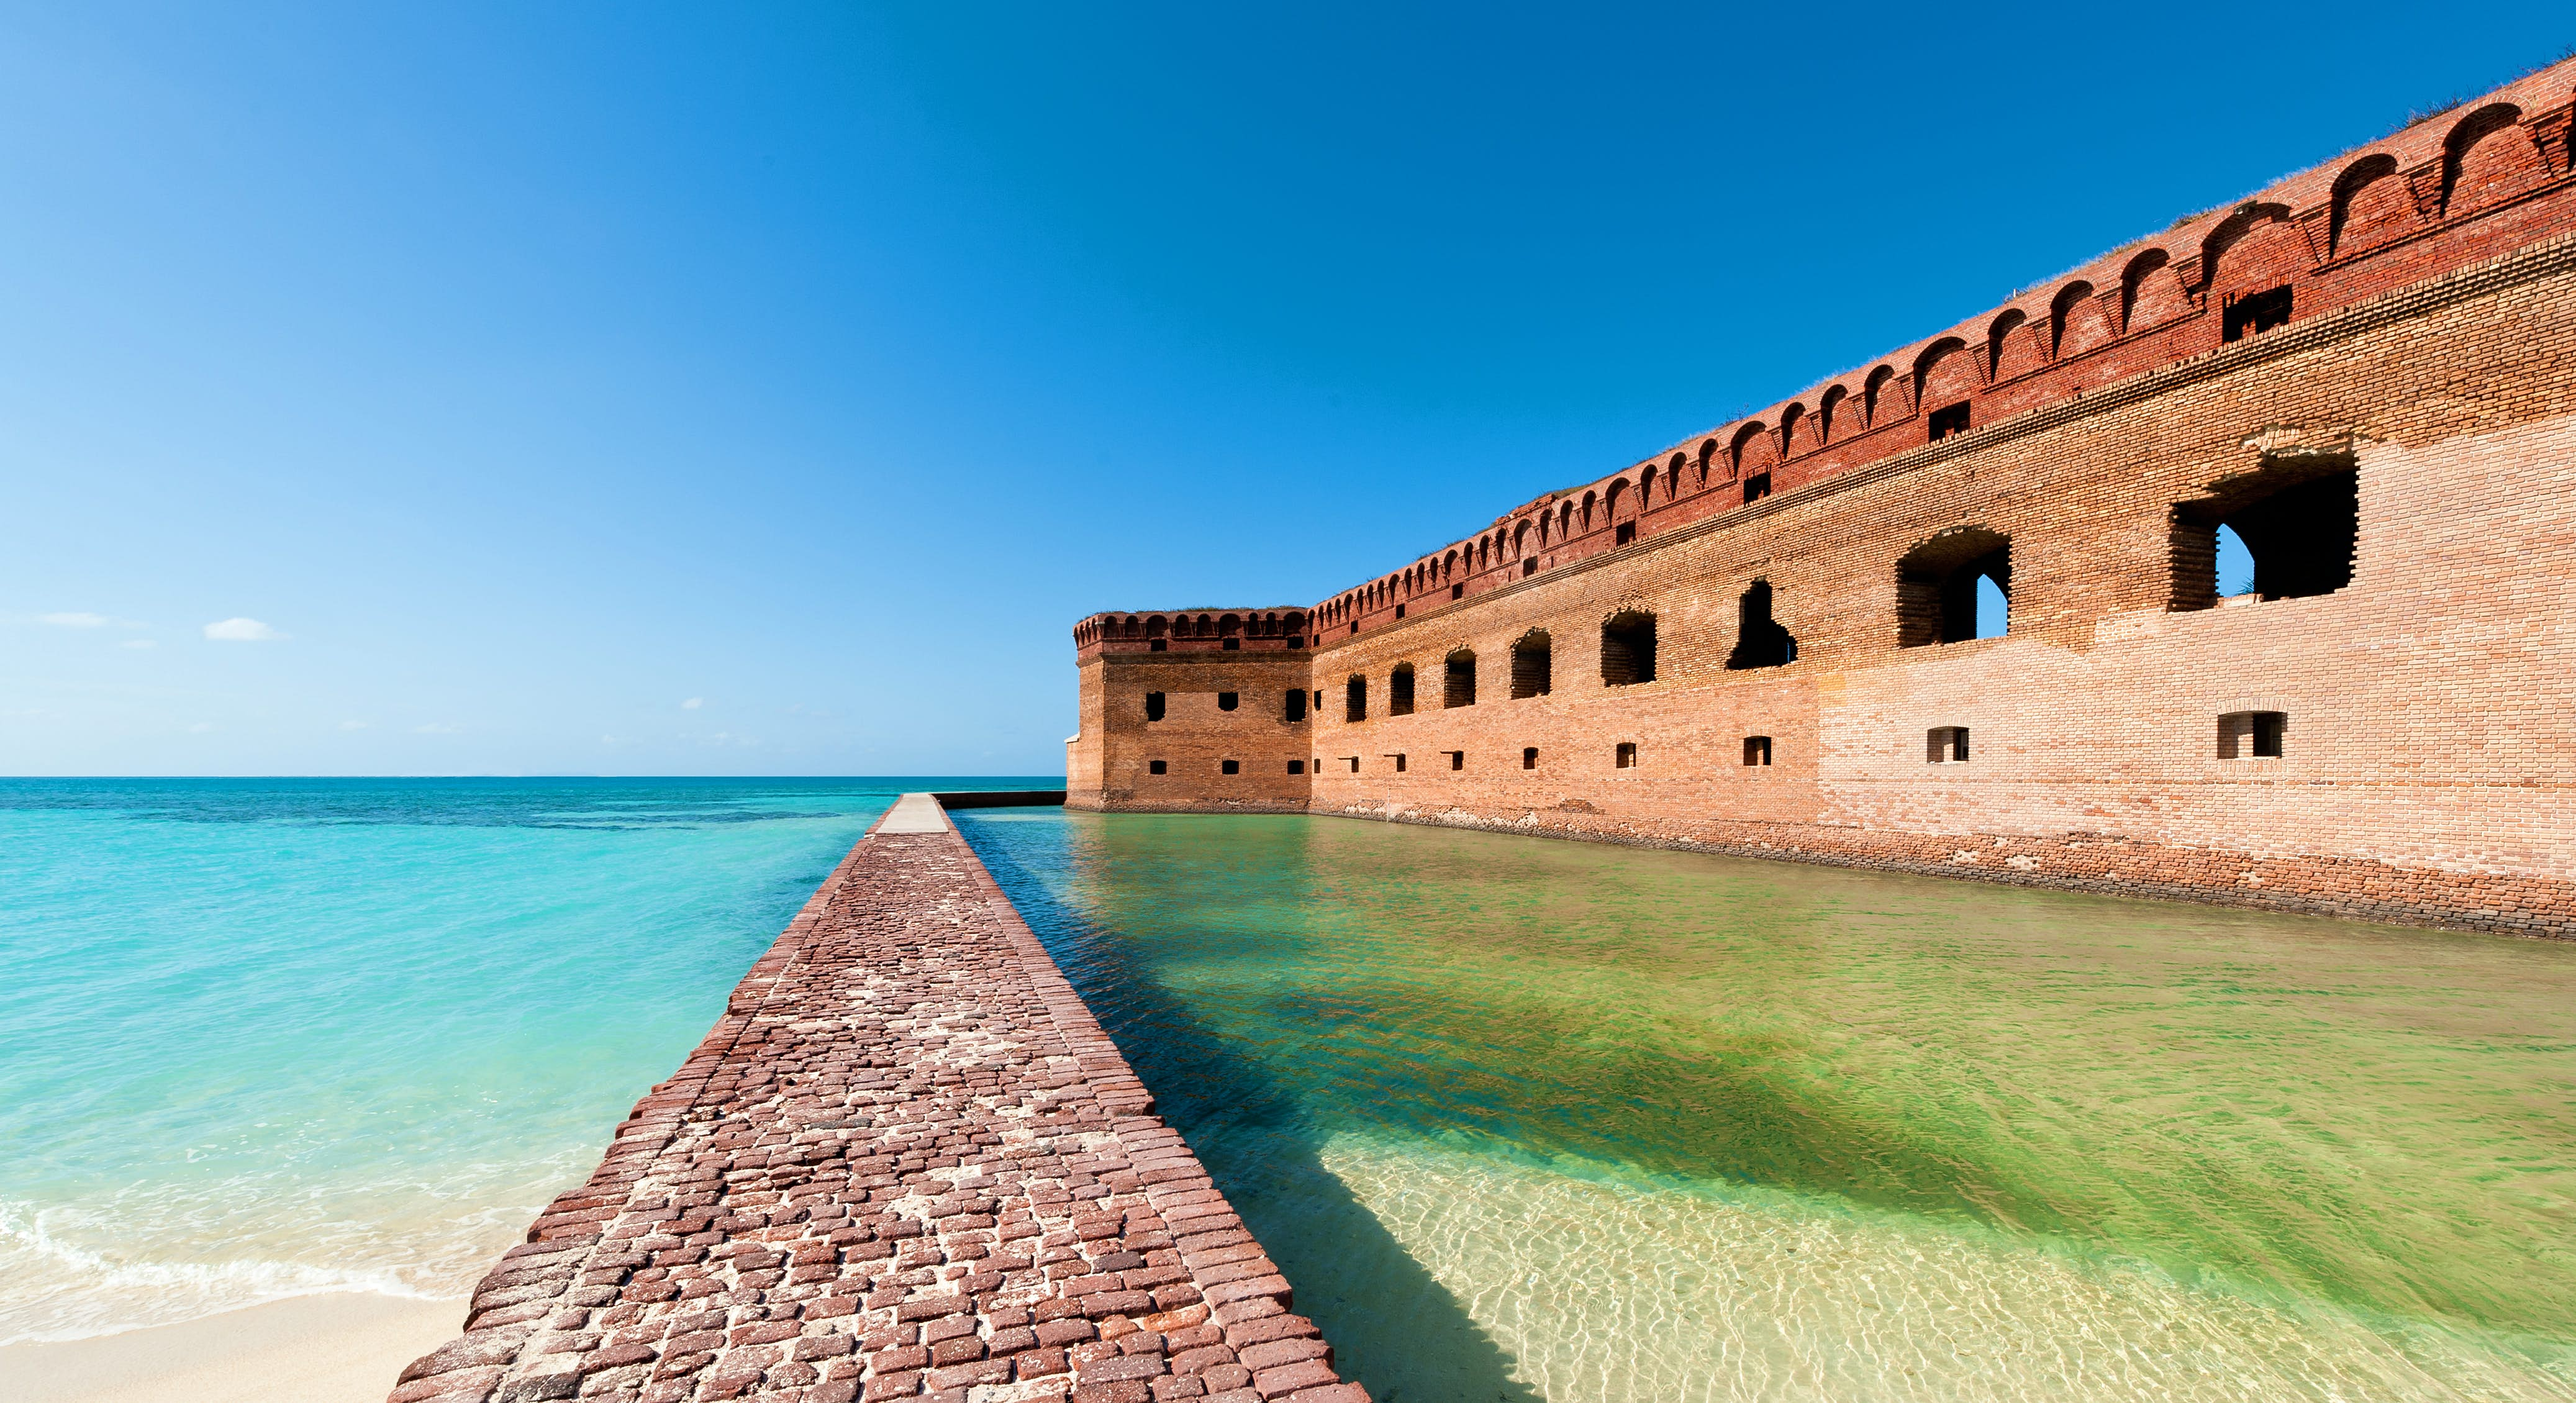 A brick walkway and the imposing Fort Jefferson, contrasting against crystal-clear water in Dry Tortugas National Park near Key West, Florida